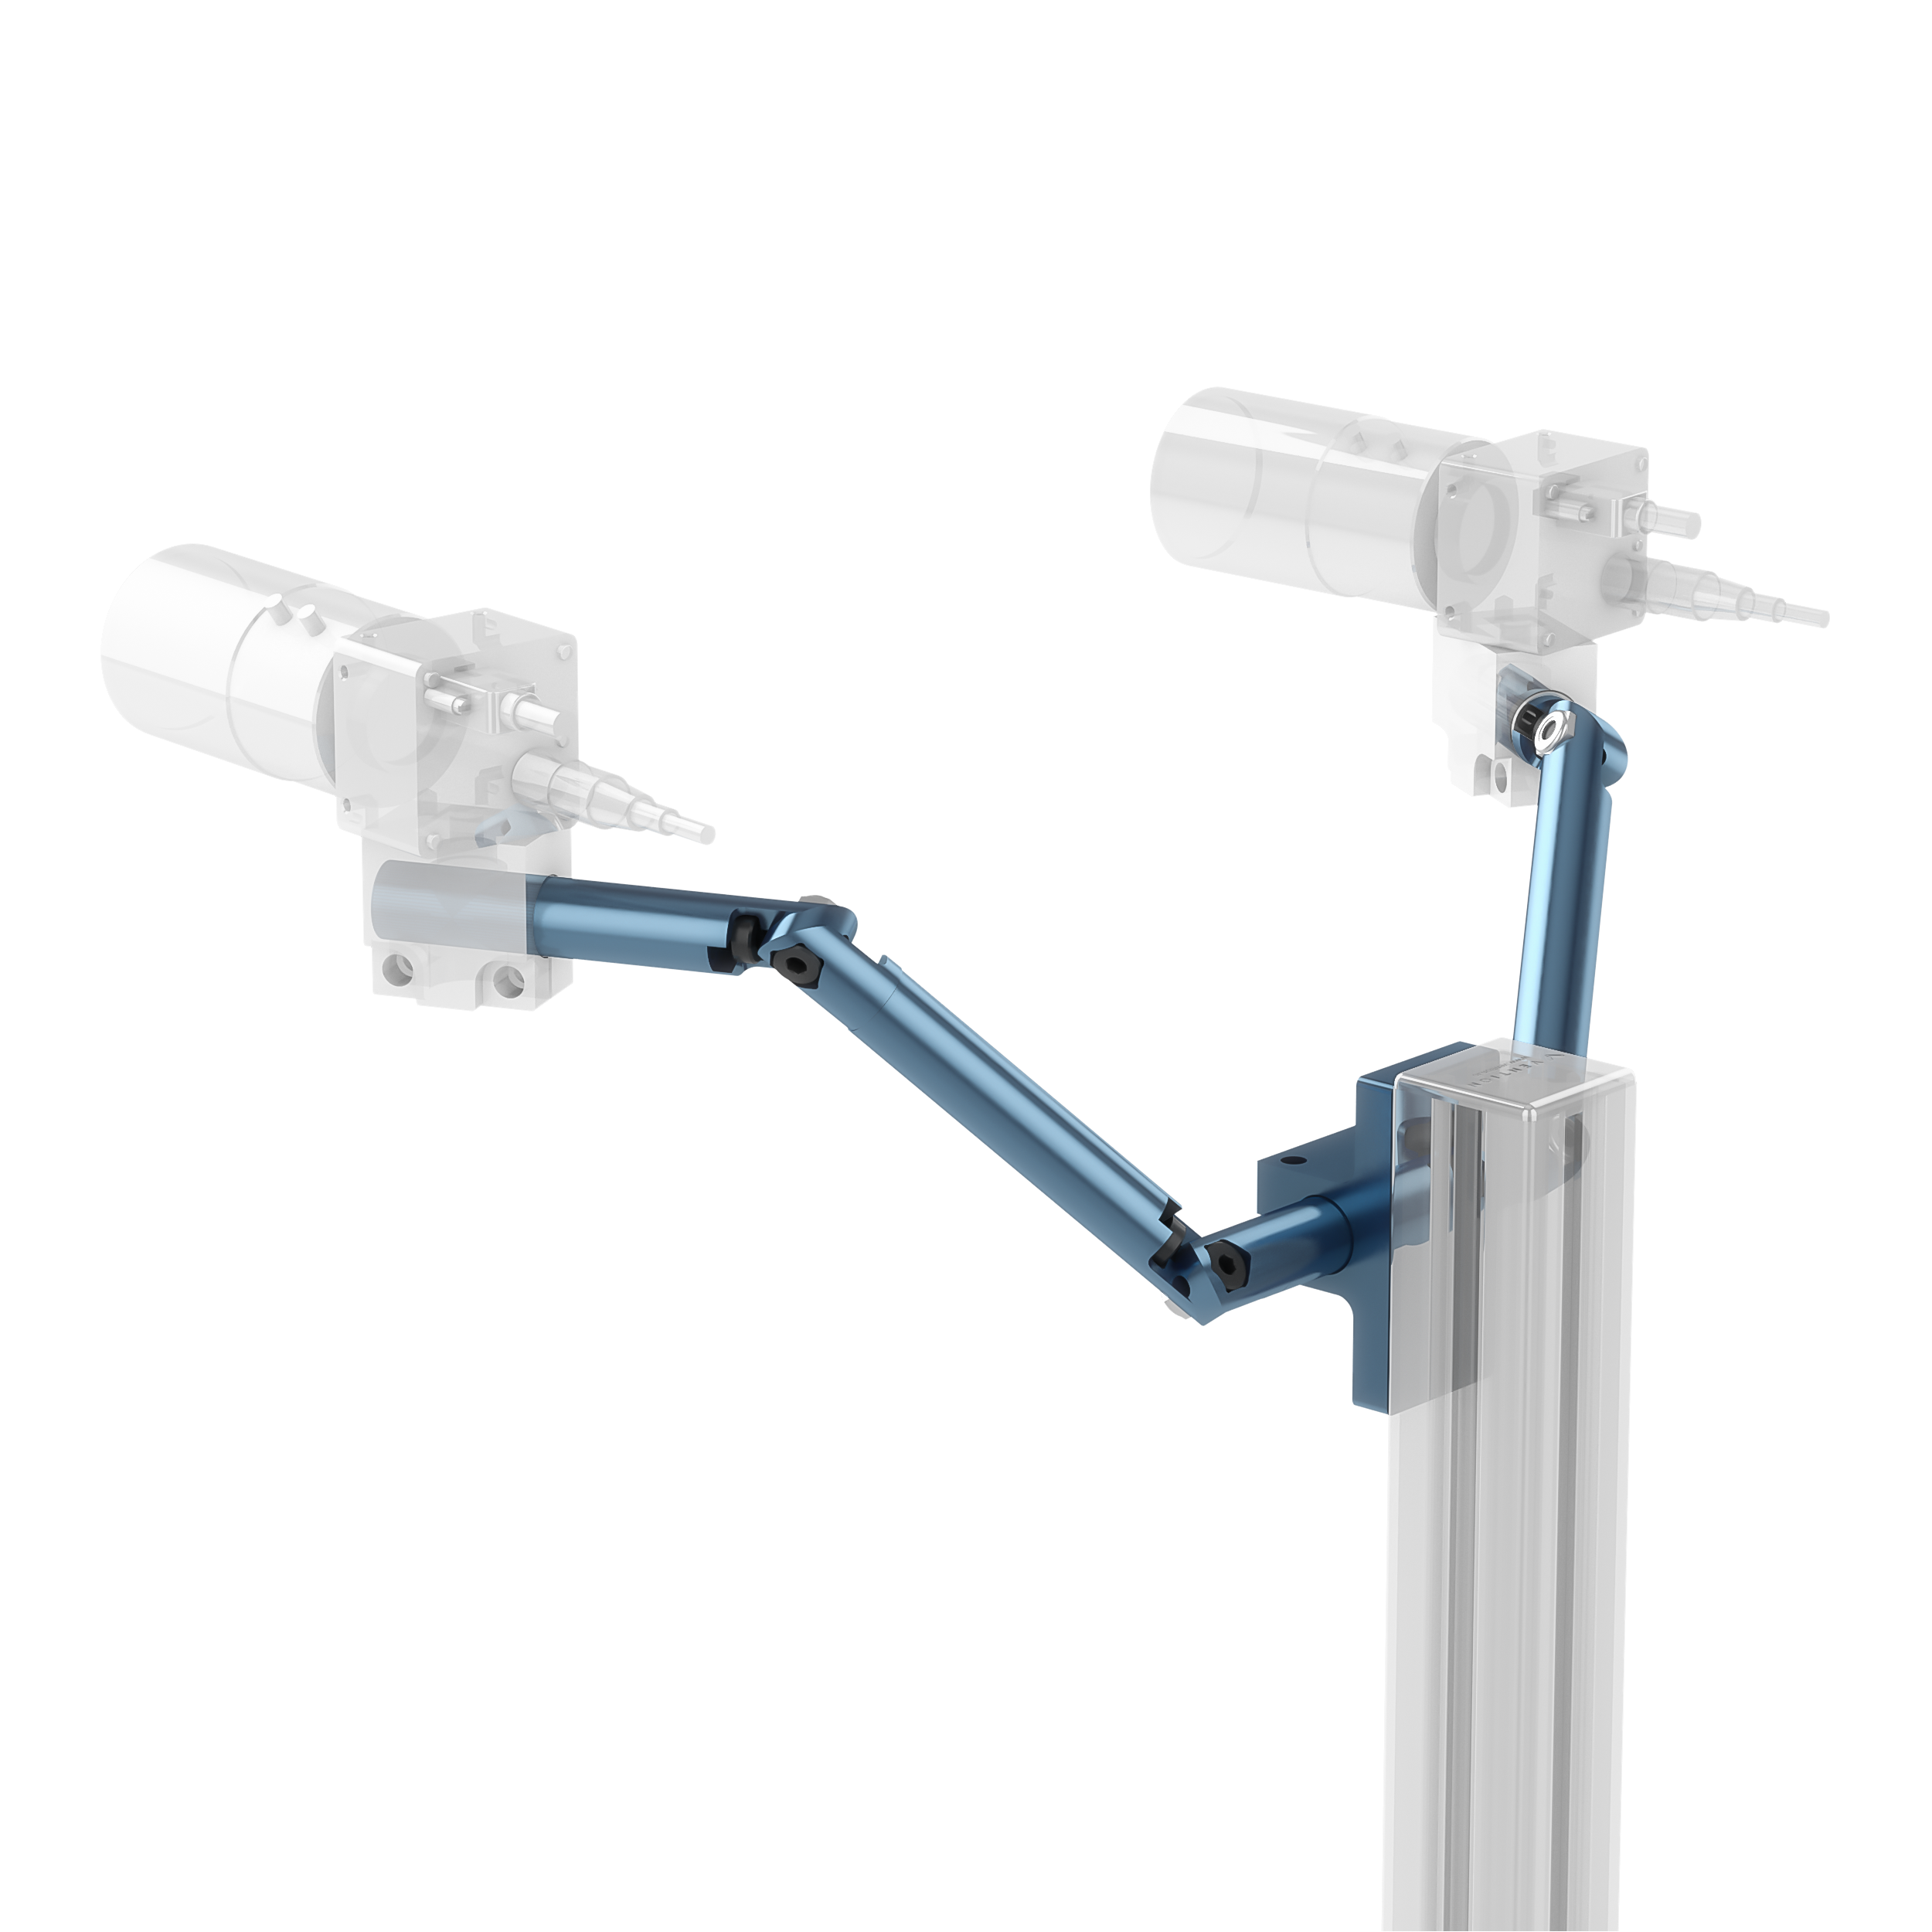 Two cameras, mounted with round extrusions on adjustable arms.